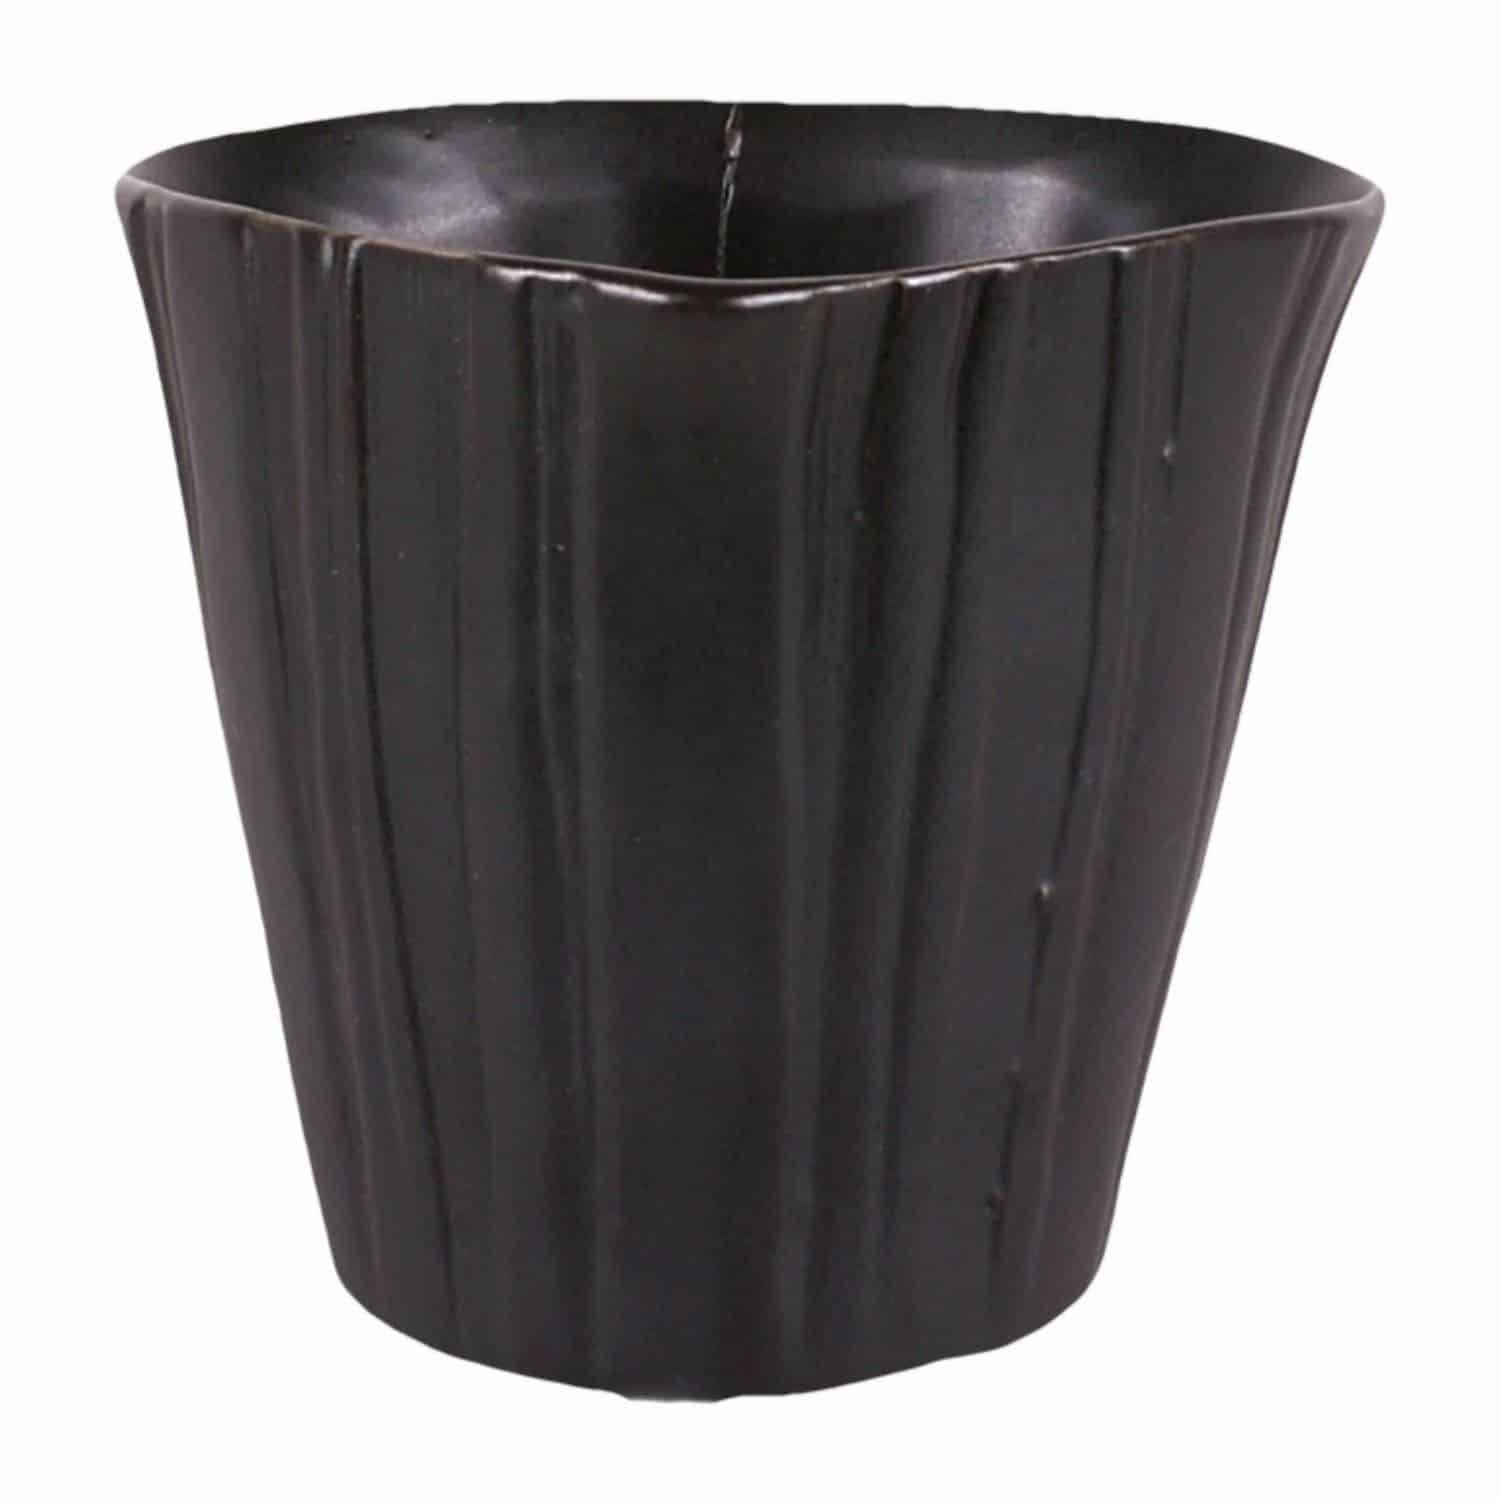 Buy our matt black handmade versatile little plant pot. A favourite for window gardens